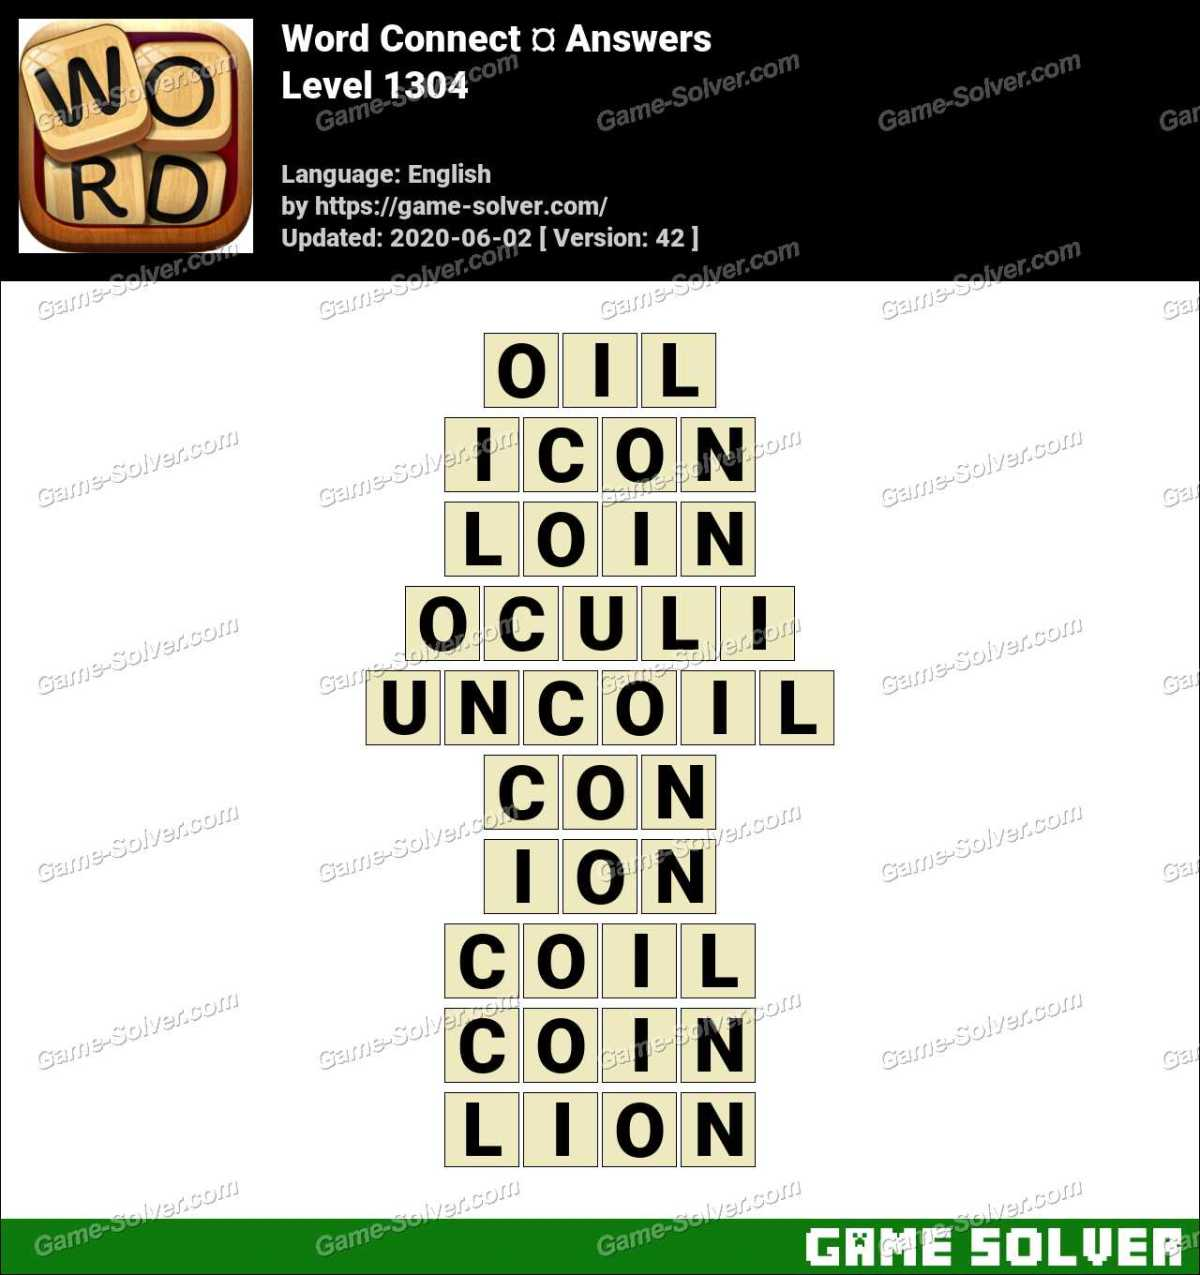 Word Connect Level 1304 Answers